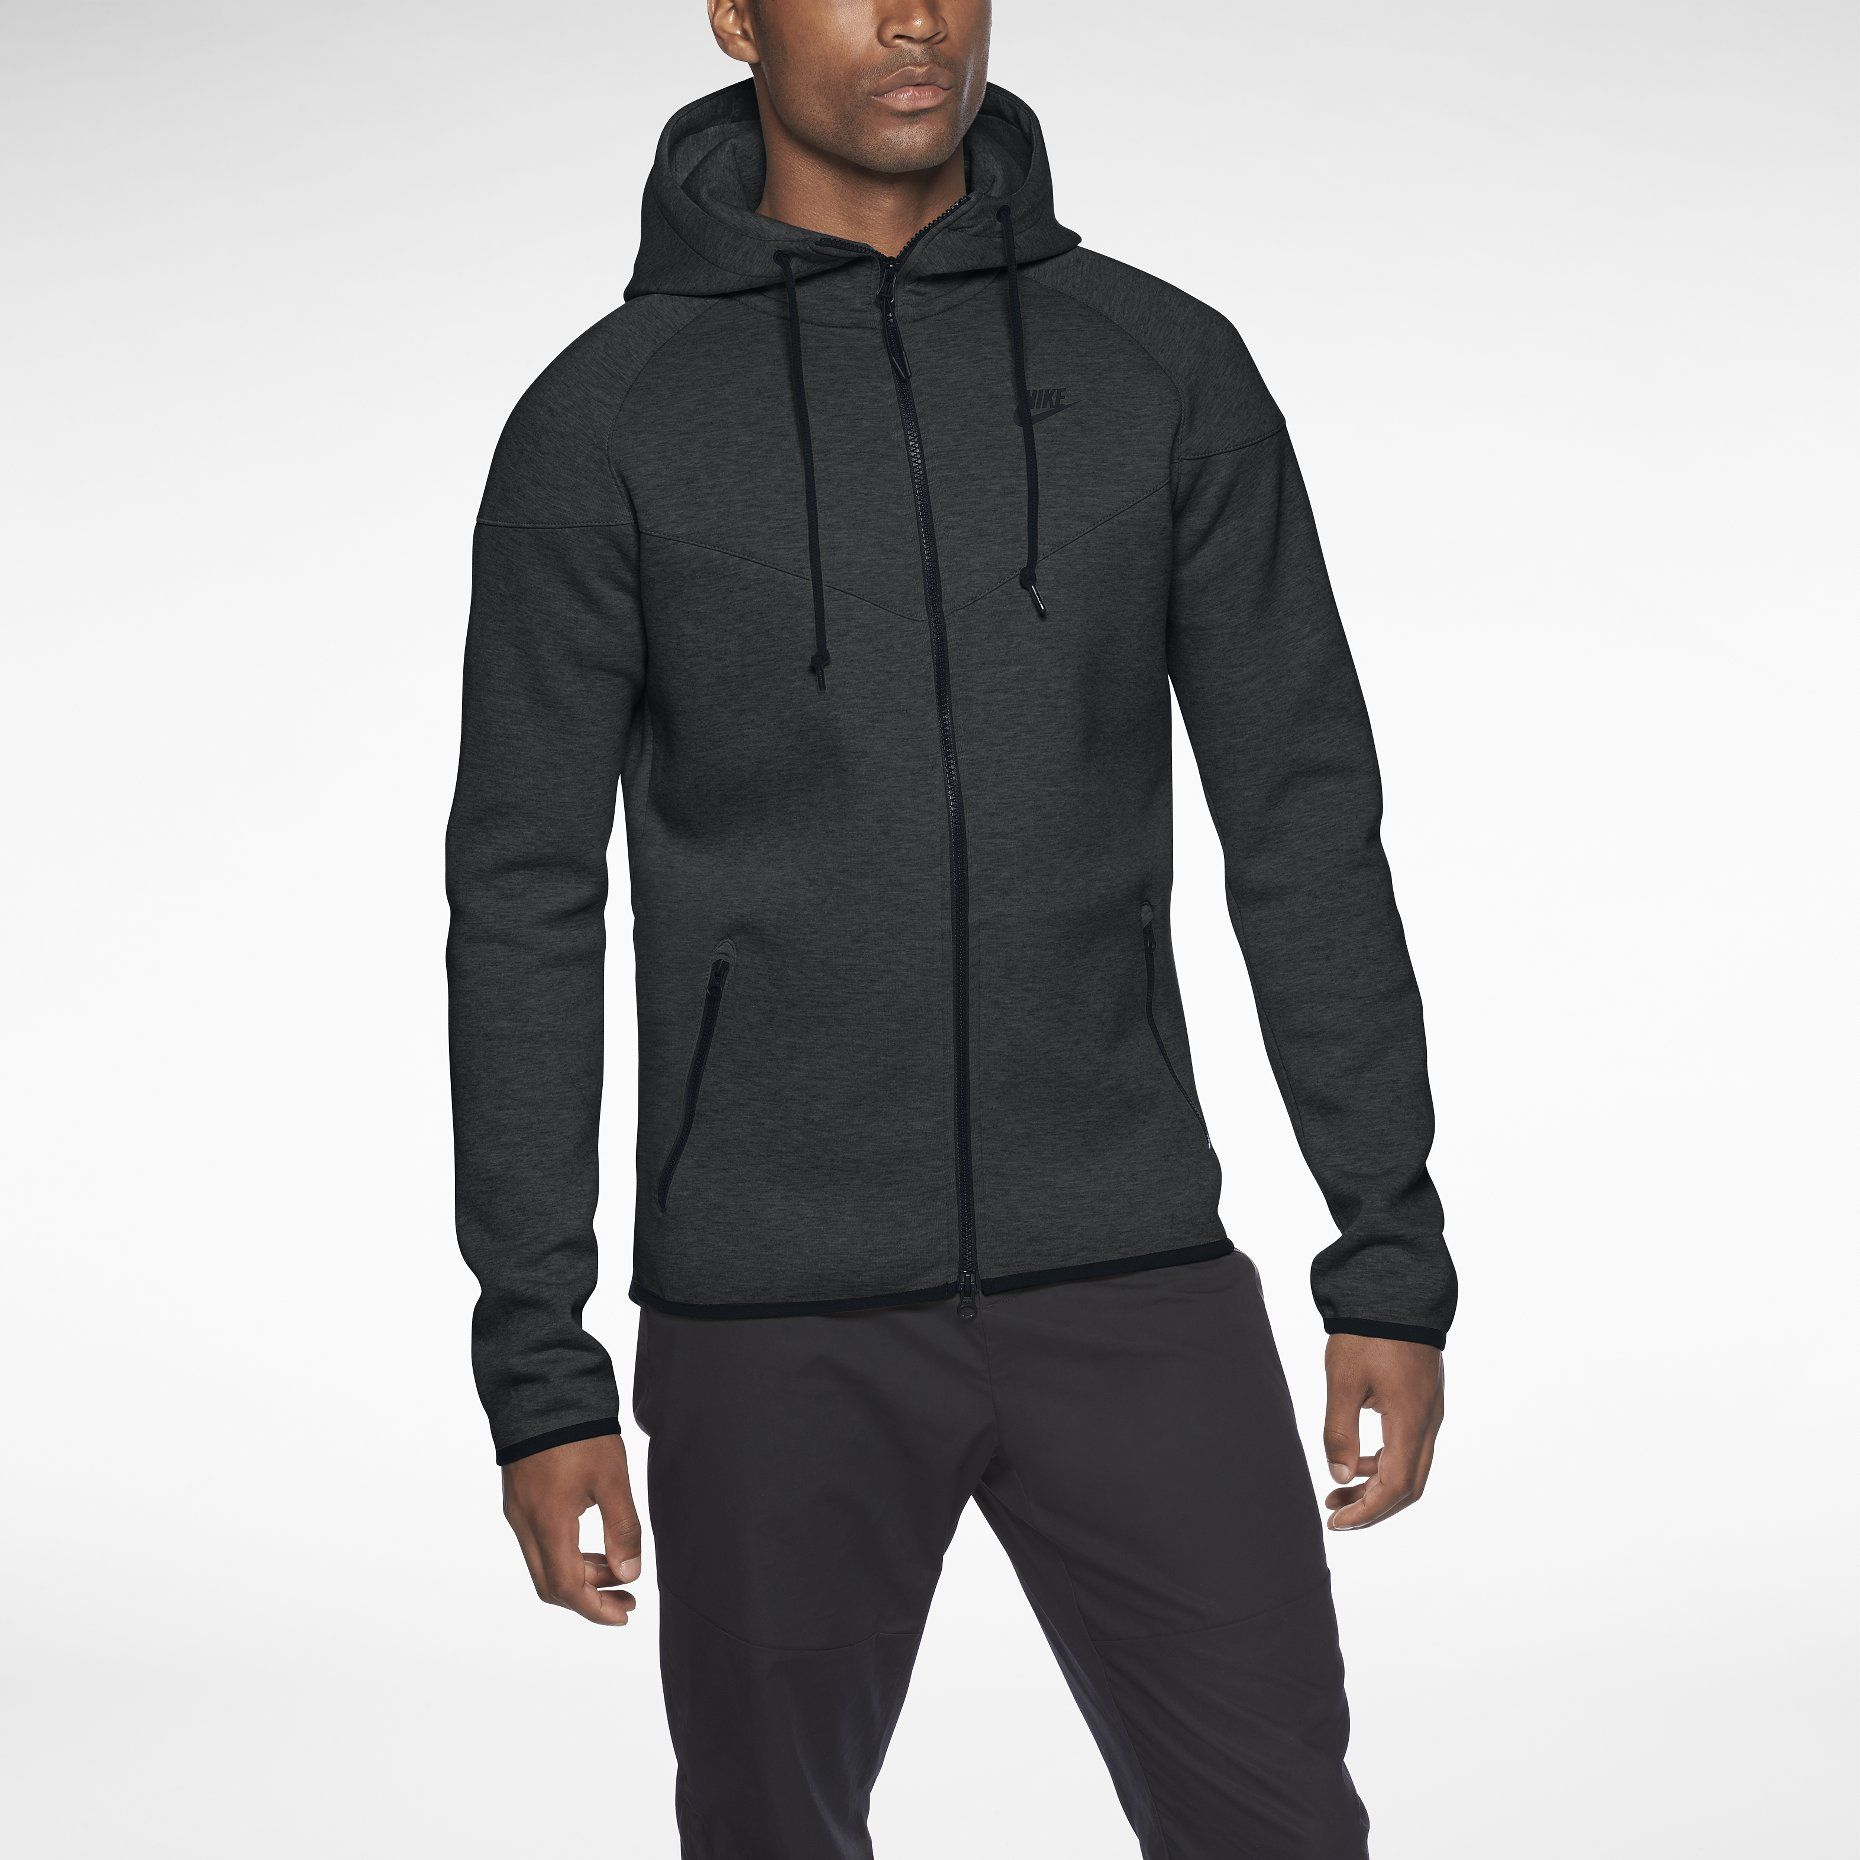 recuerdos pueblo ego  The Nike Tech Fleece Windrunner Full-Zip Men's Hoodie. | Nike tech fleece  windrunner, Nike tech fleece, Outerwear fashion